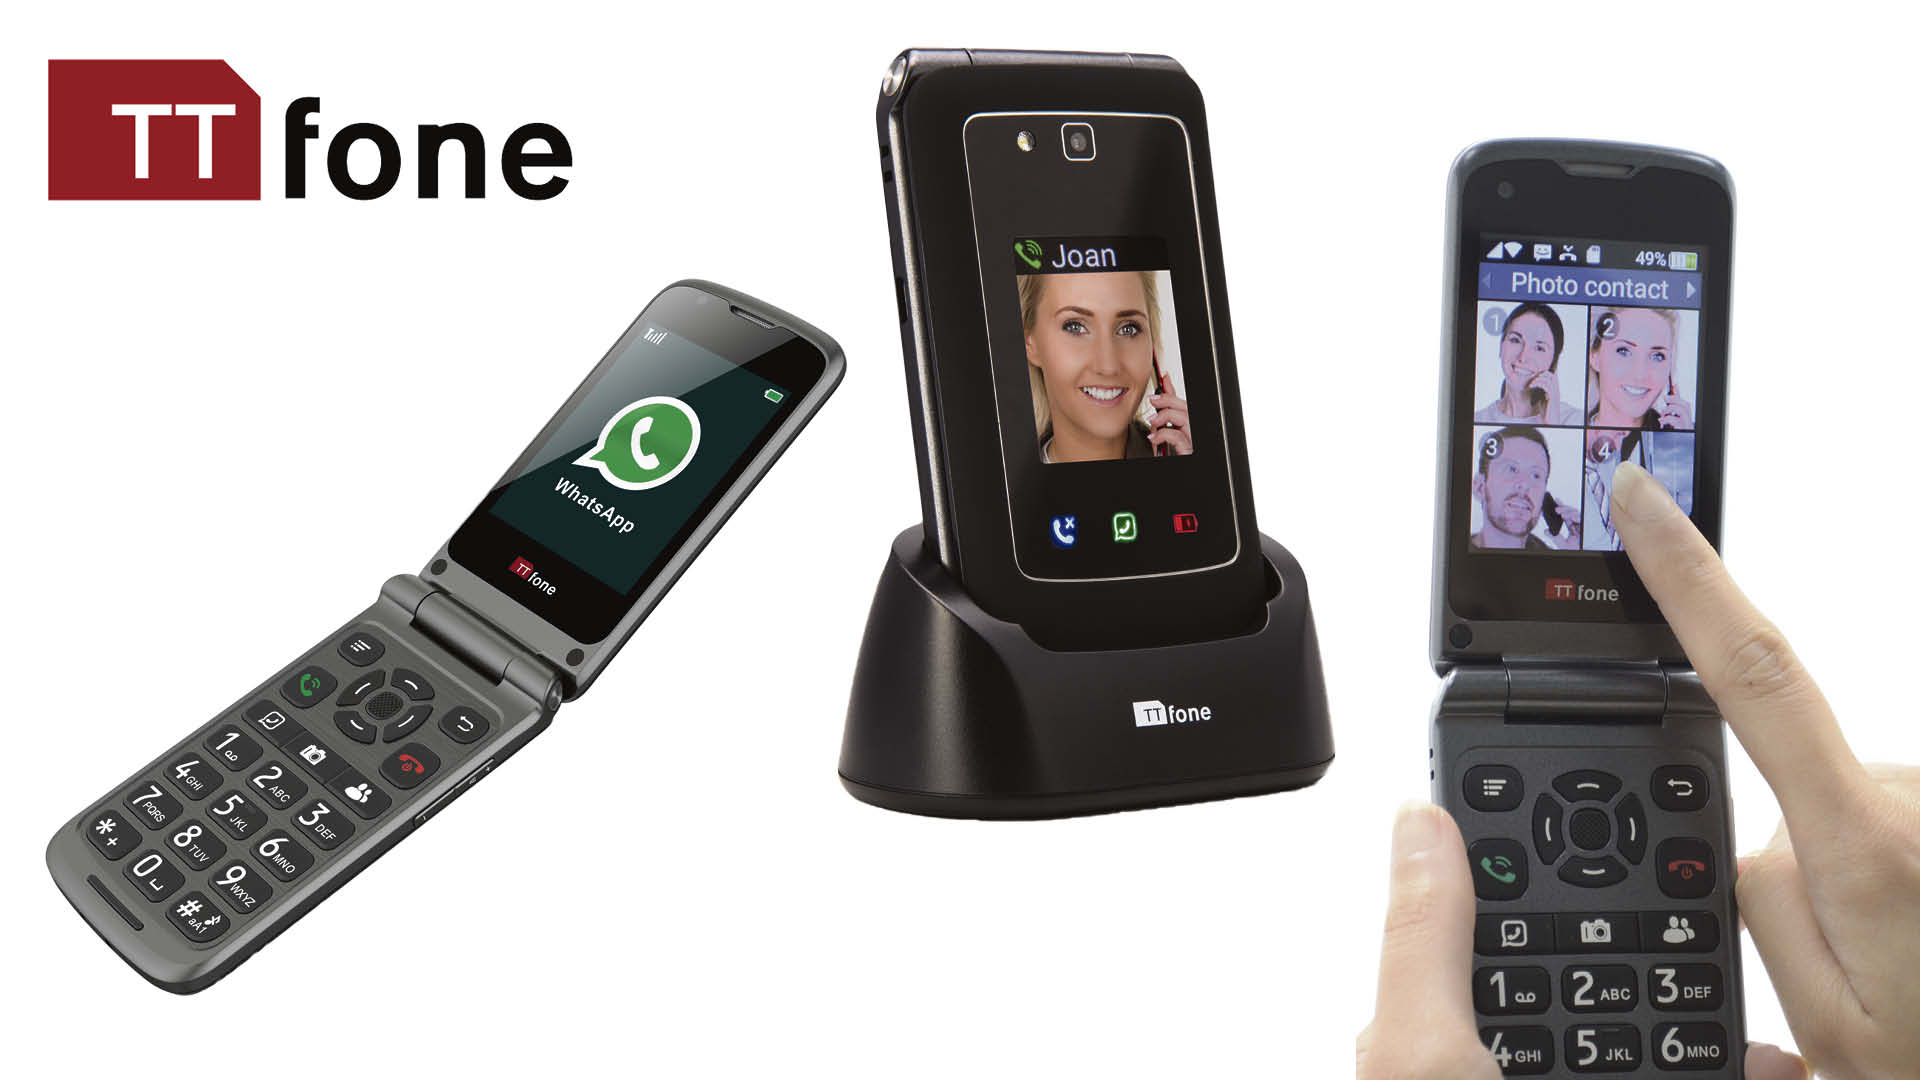 Win an easy-to-use TTfone TT950 mobile phone Worth £99.99!